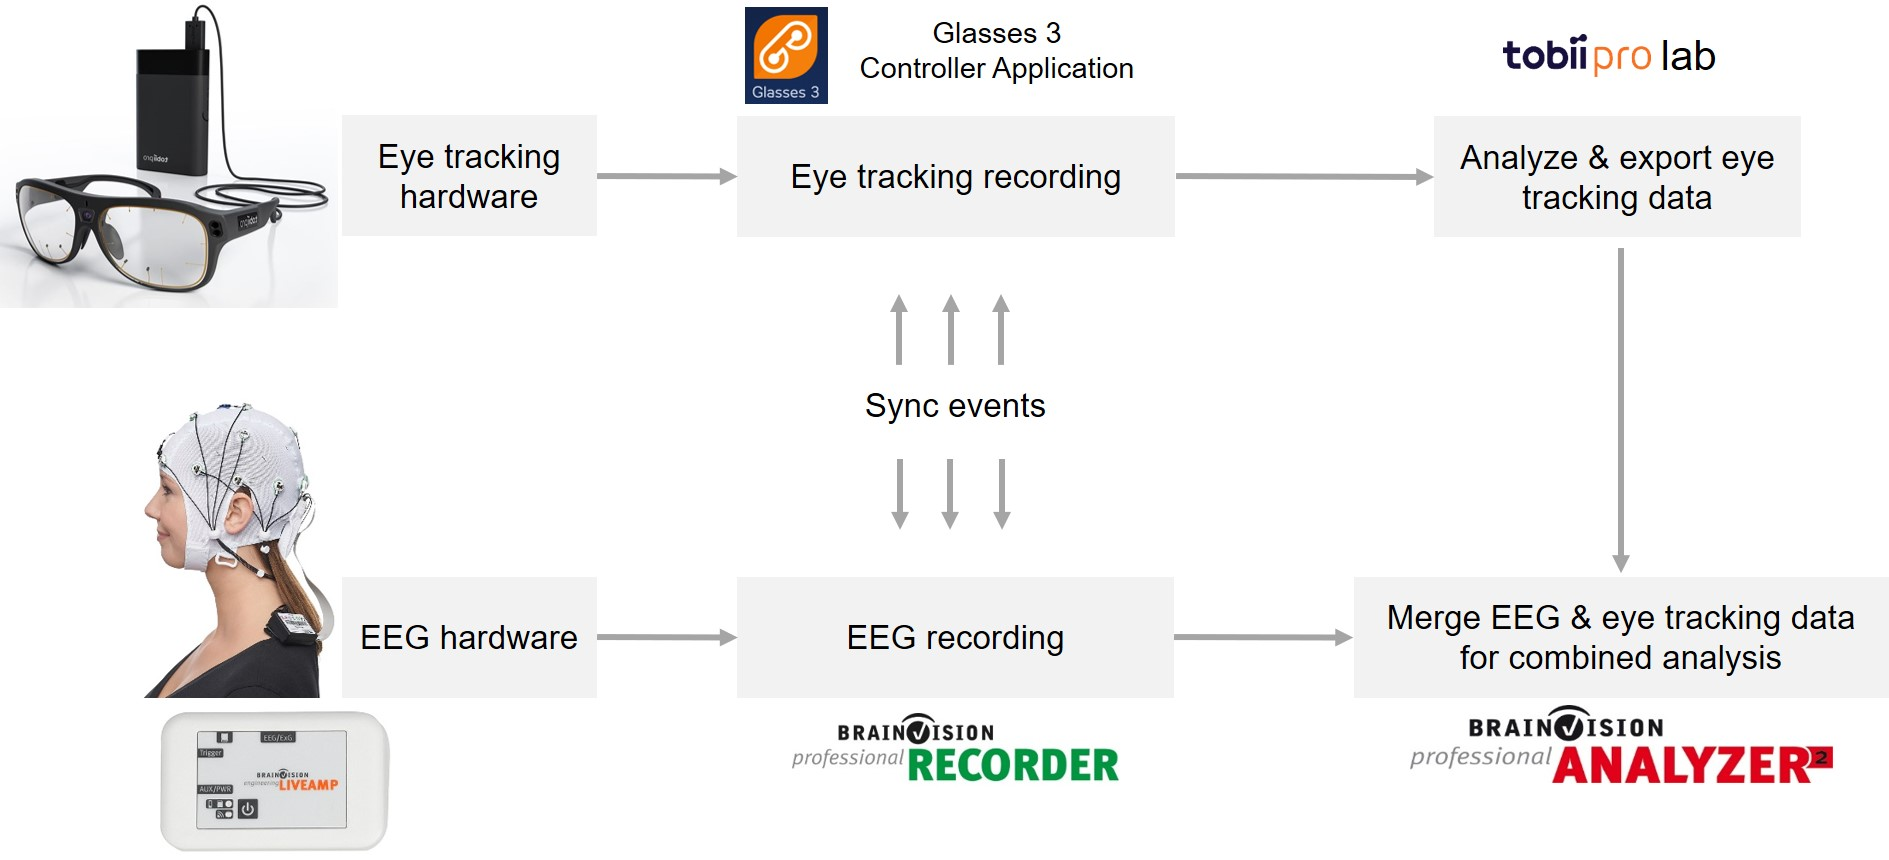 Fig. 2. Mobile EEG and wearable eye tracking application workflow. The diagram shows each step and material involved in the workflow from the start (i.e., EEG and eye tracking data recording) up to the end (i.e., offline merging of EEG and eye tracking data and subsequent combined analyses).